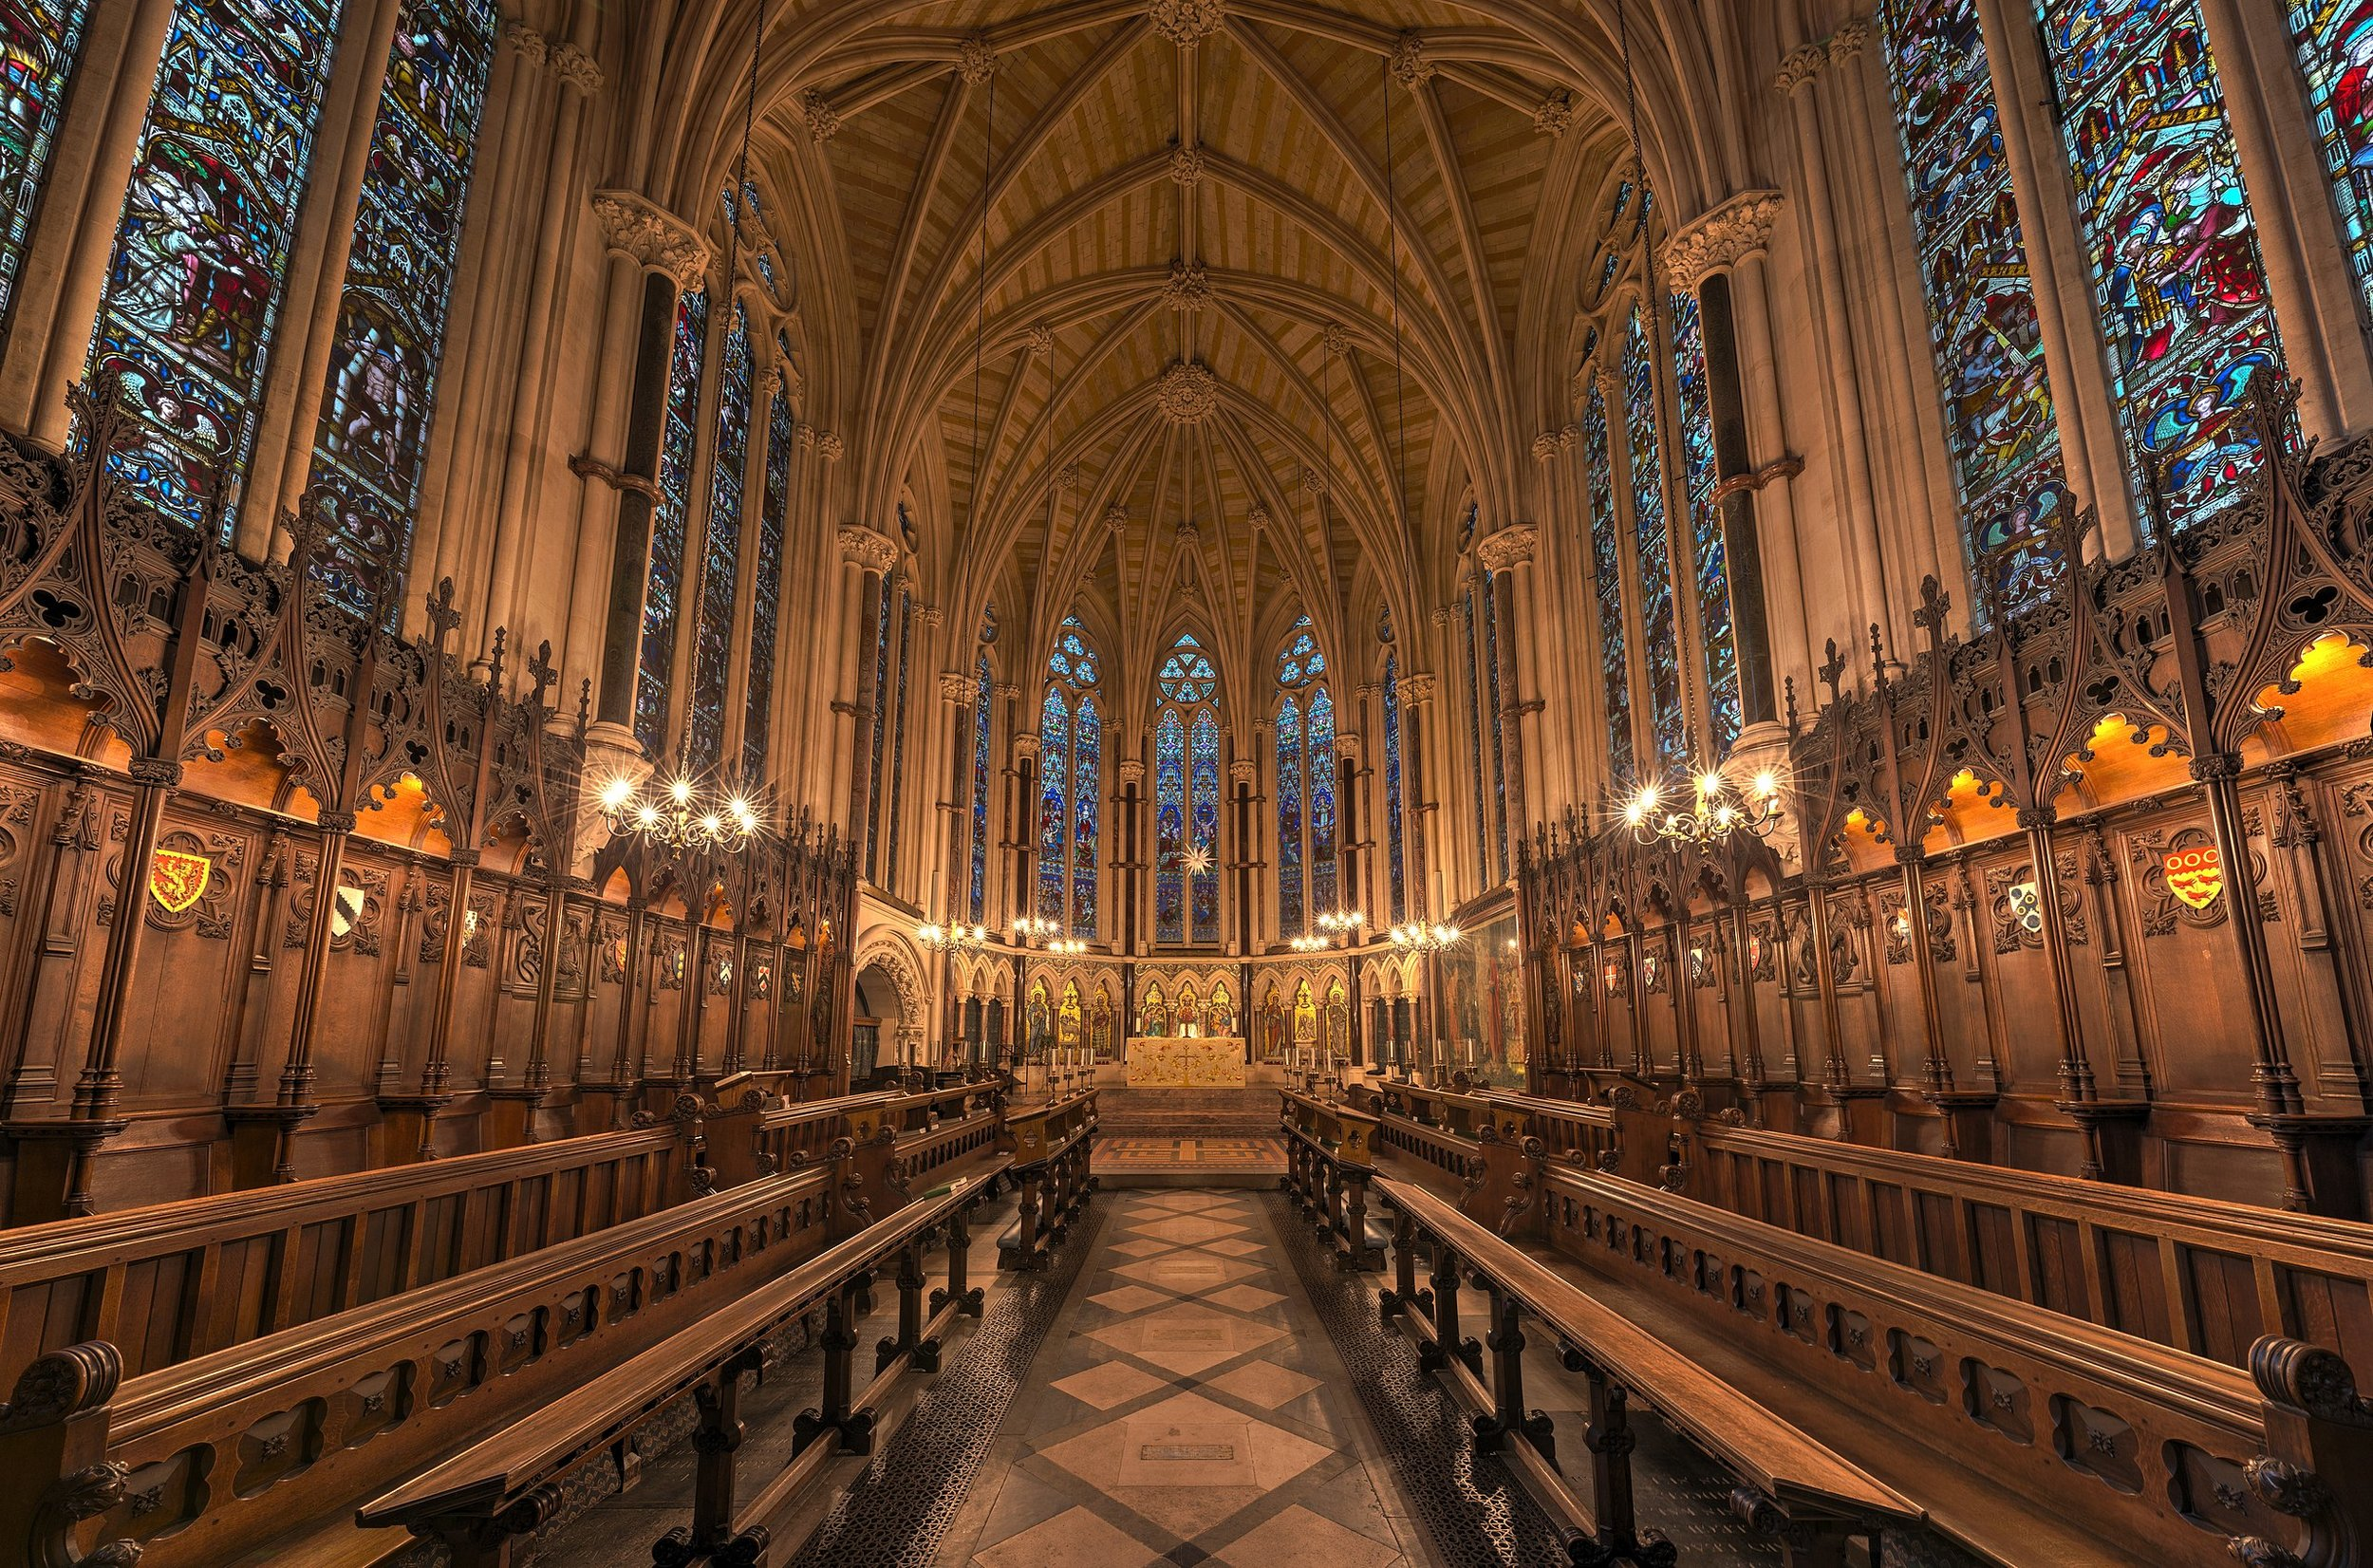 The ranking measures student engagement and outcomes, the diversity of institutions' learning environments, and the resources that universities have to teach effectively. - Photo:Exeter College Chapel /David Iliff